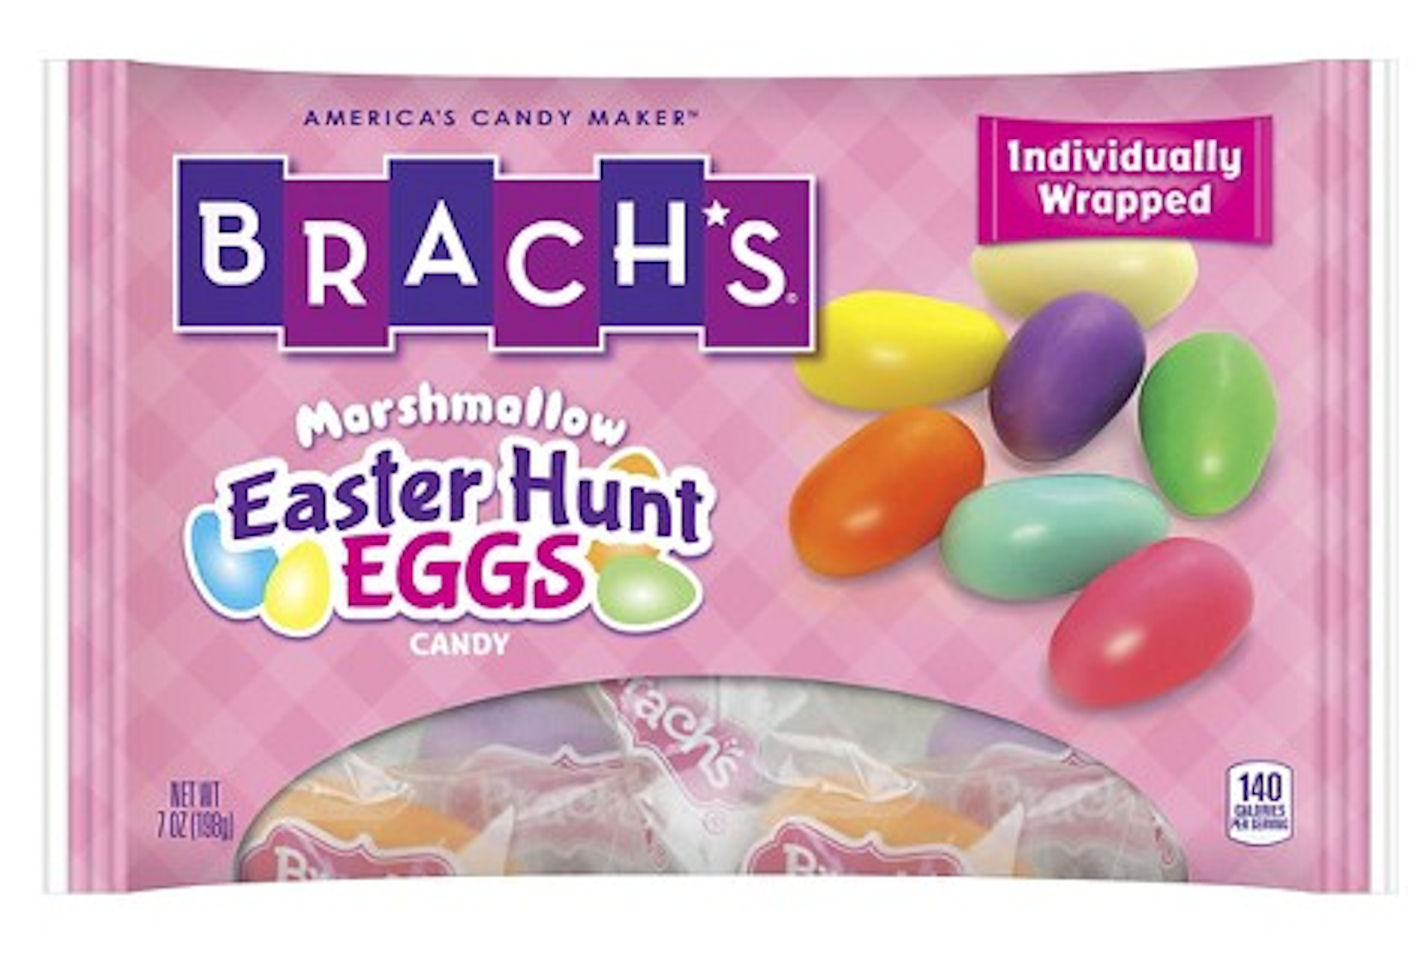 Brach's Easter Hunt Eggs Marshmallow Candy 7 oz